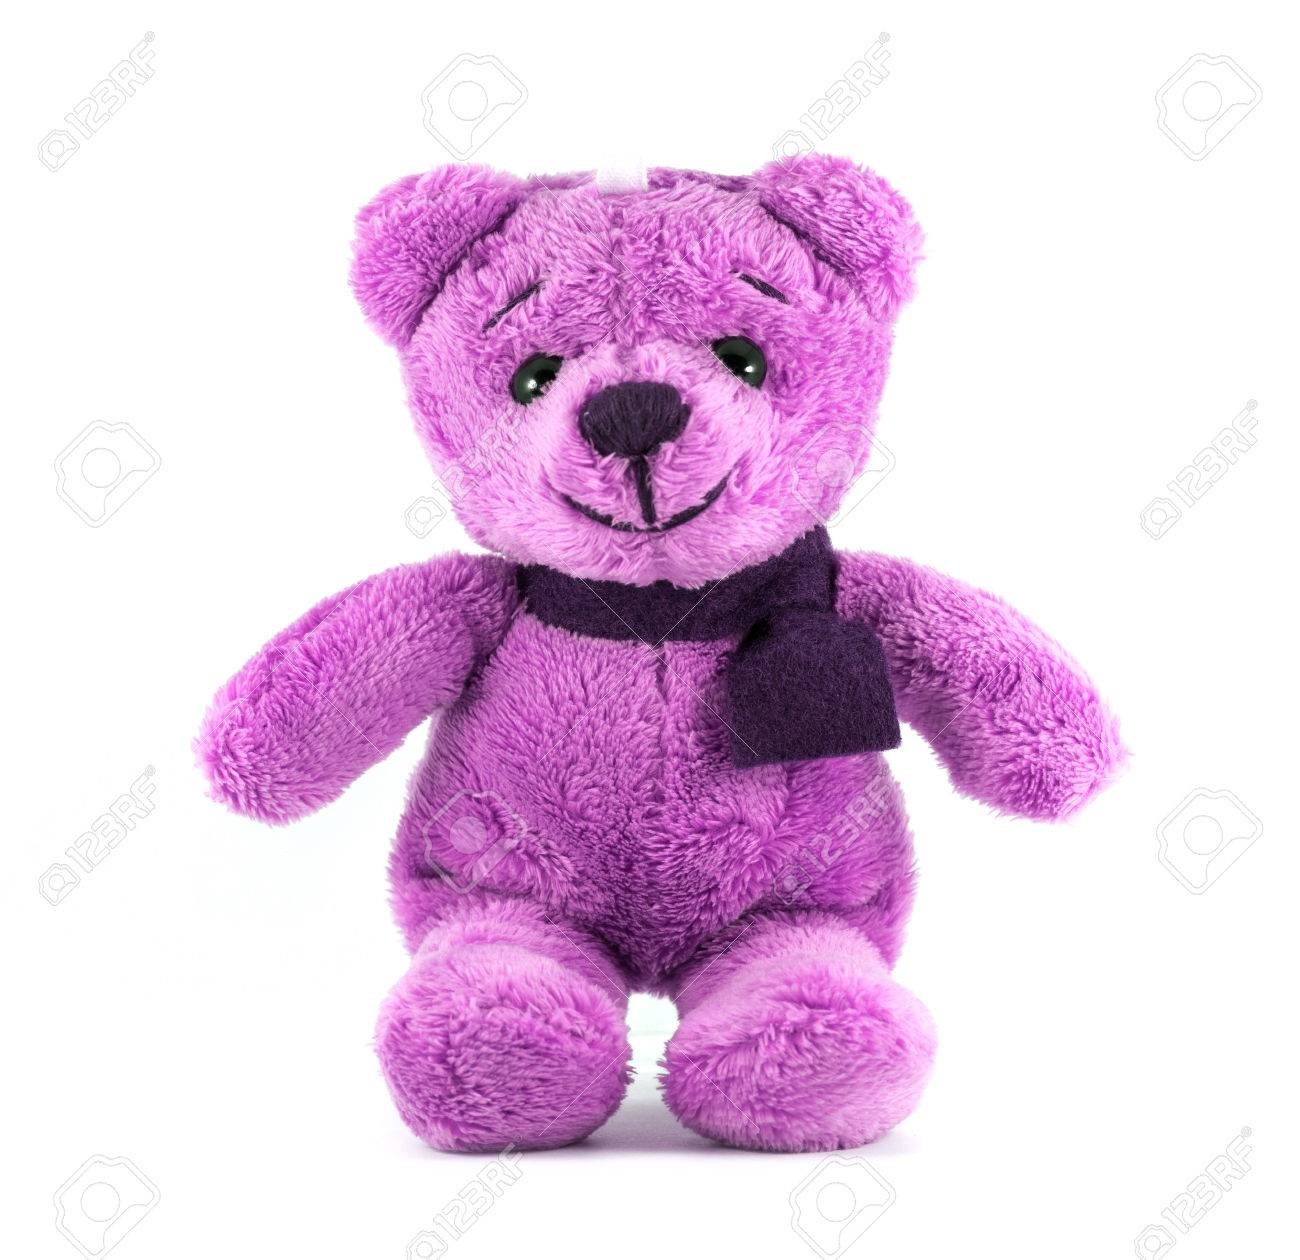 Image result for teddy bear with purple scarf